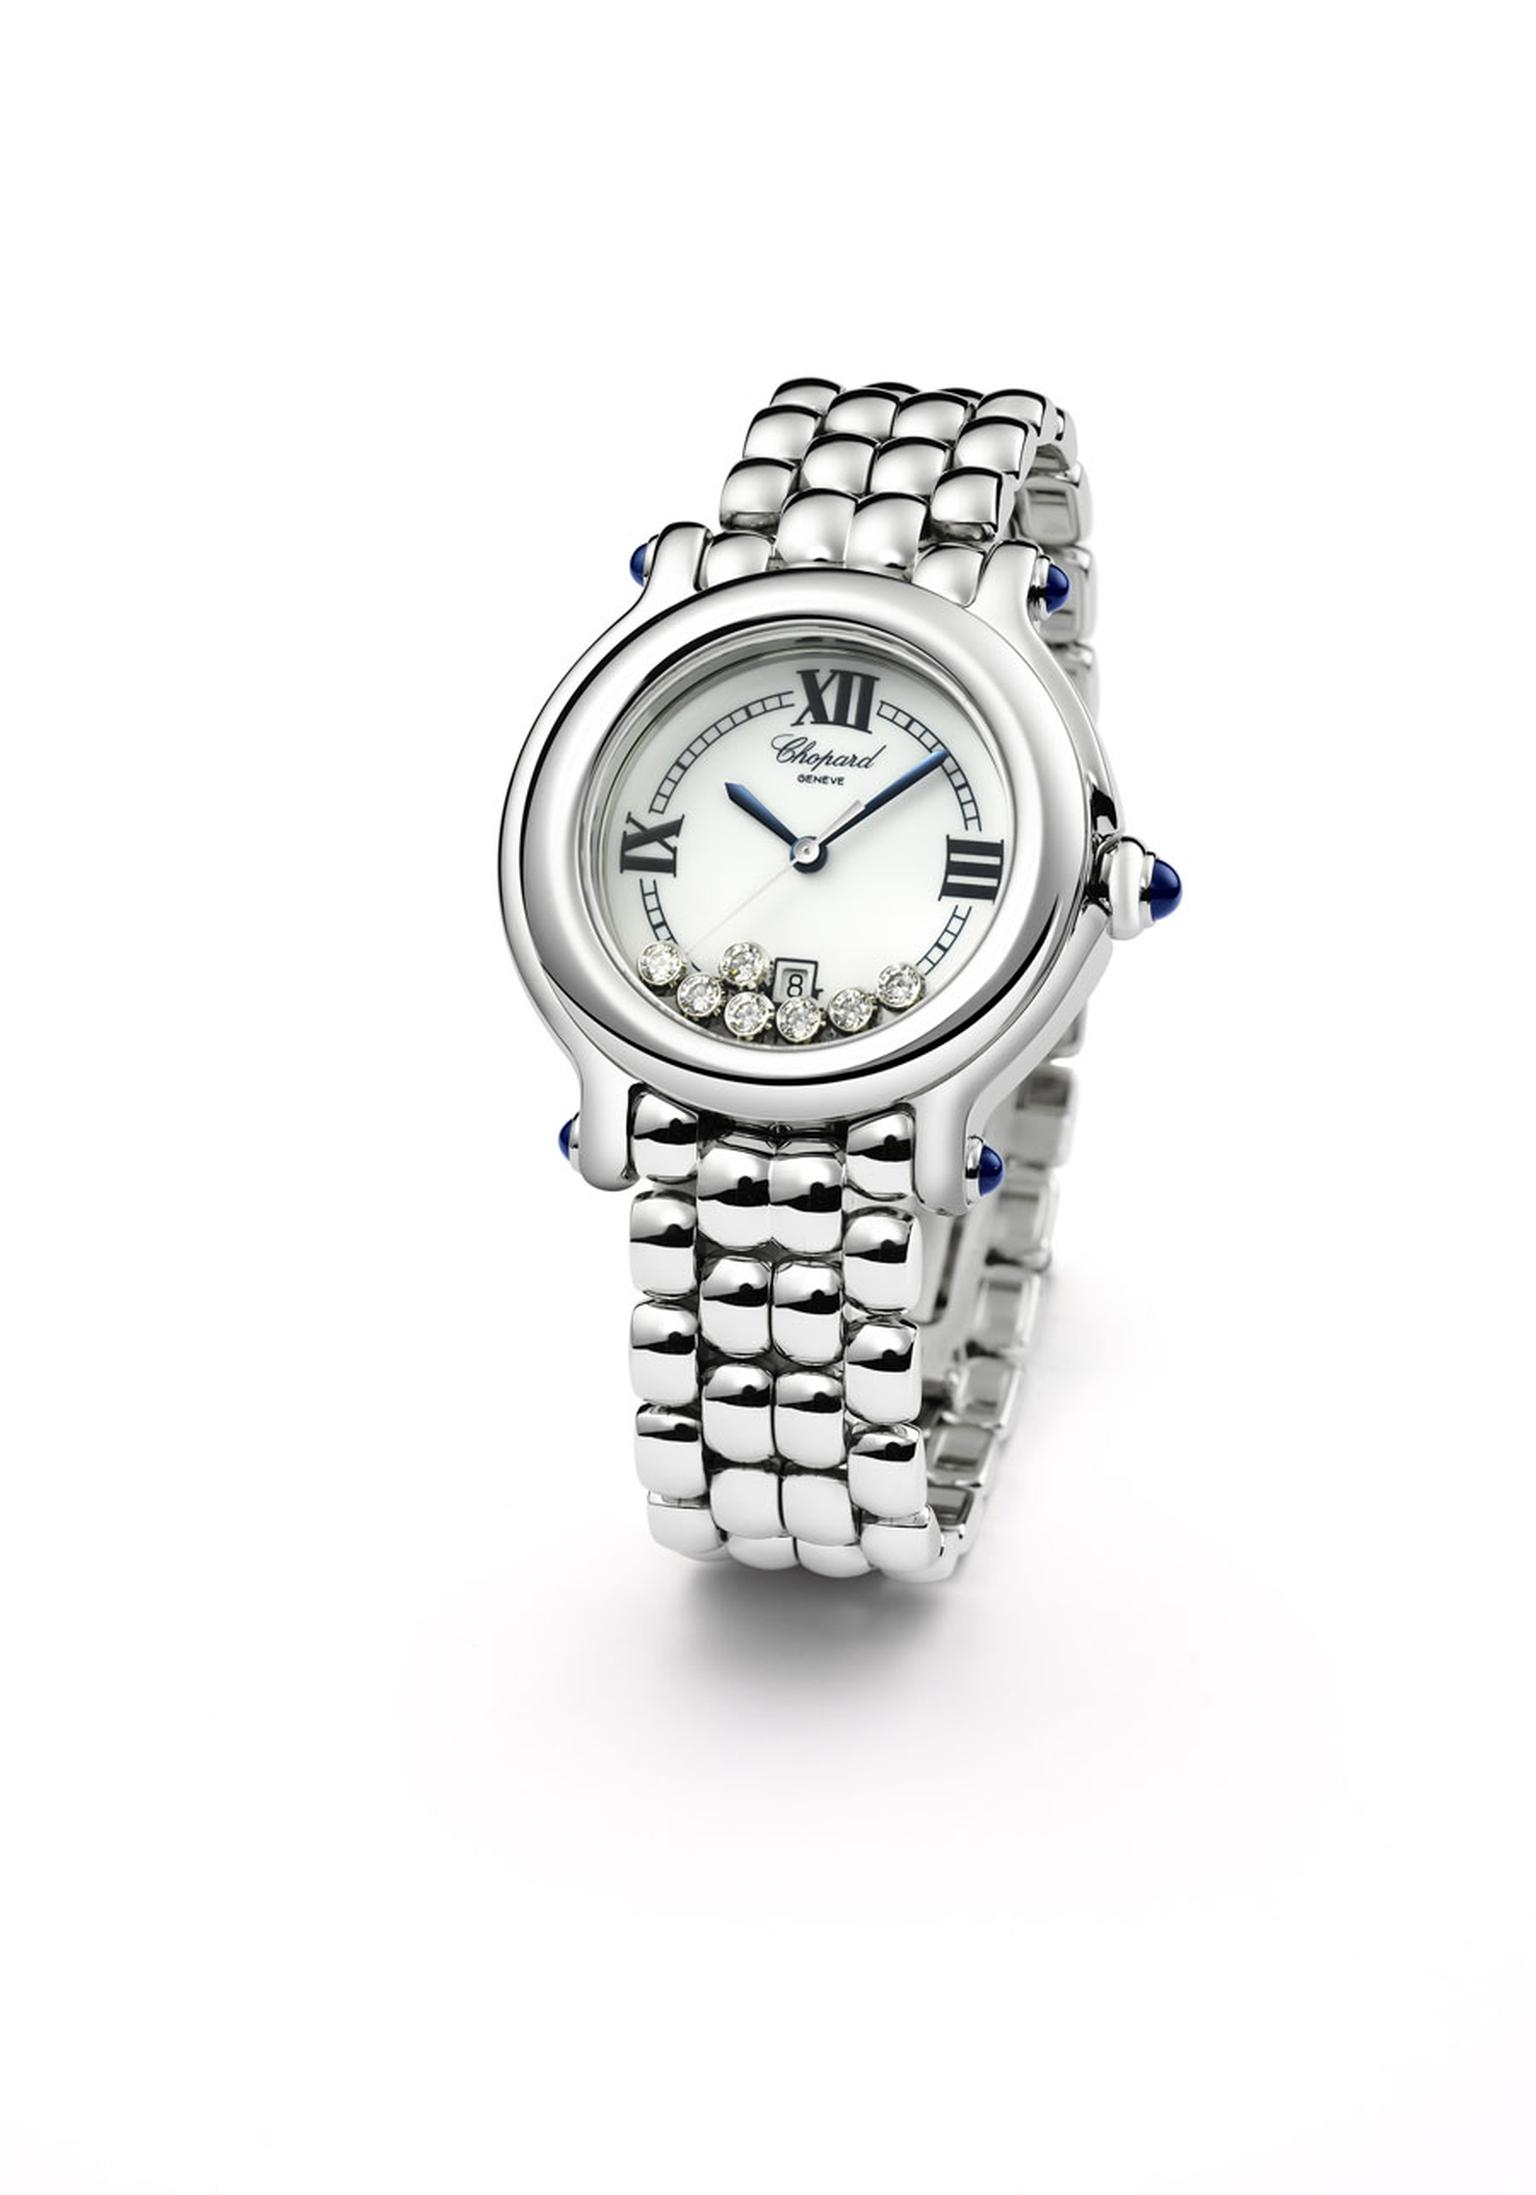 ChopardHappySport8